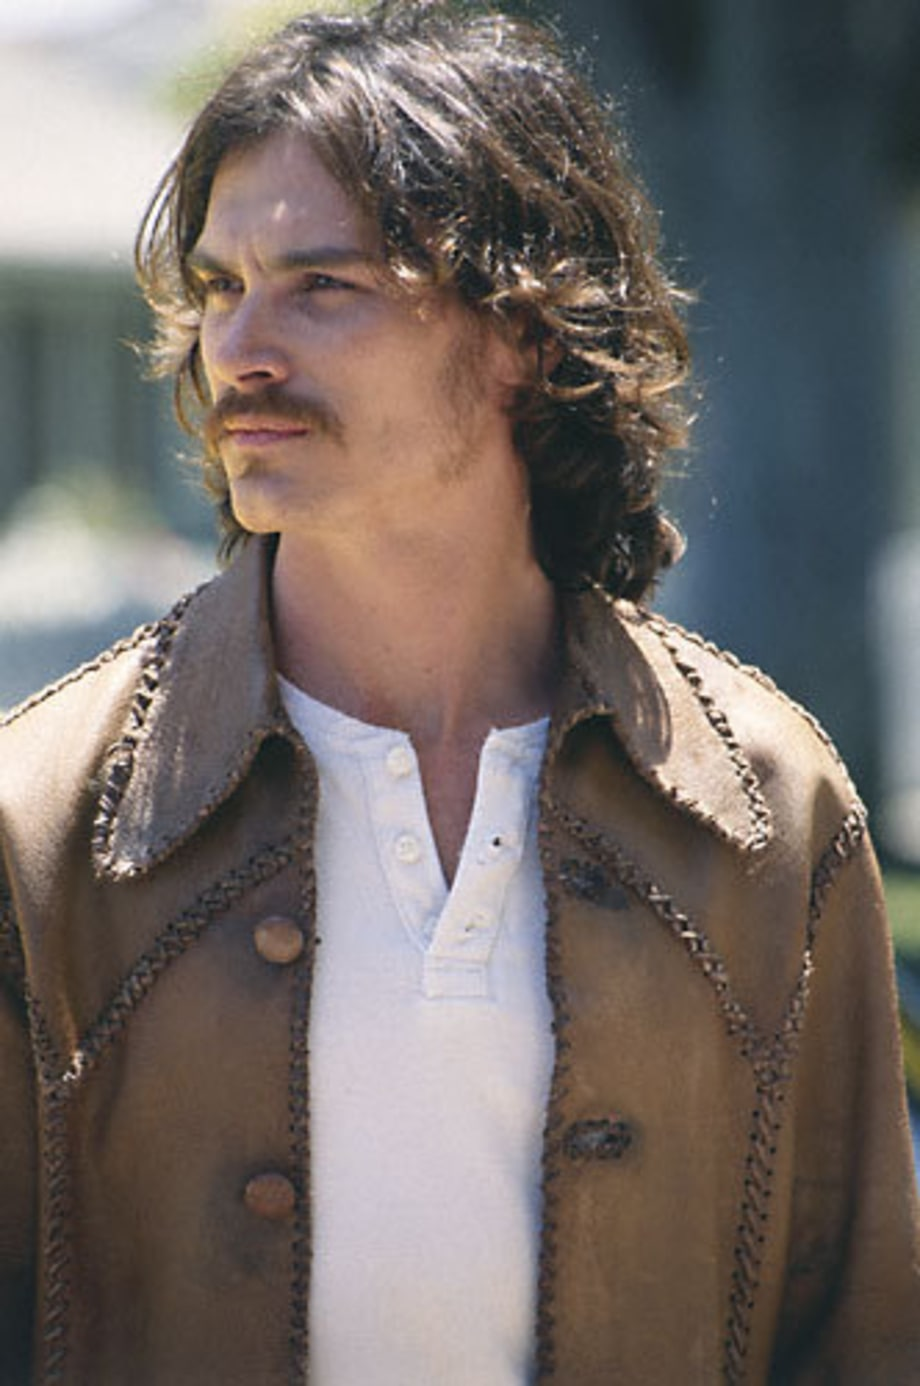 Billy Crudup in